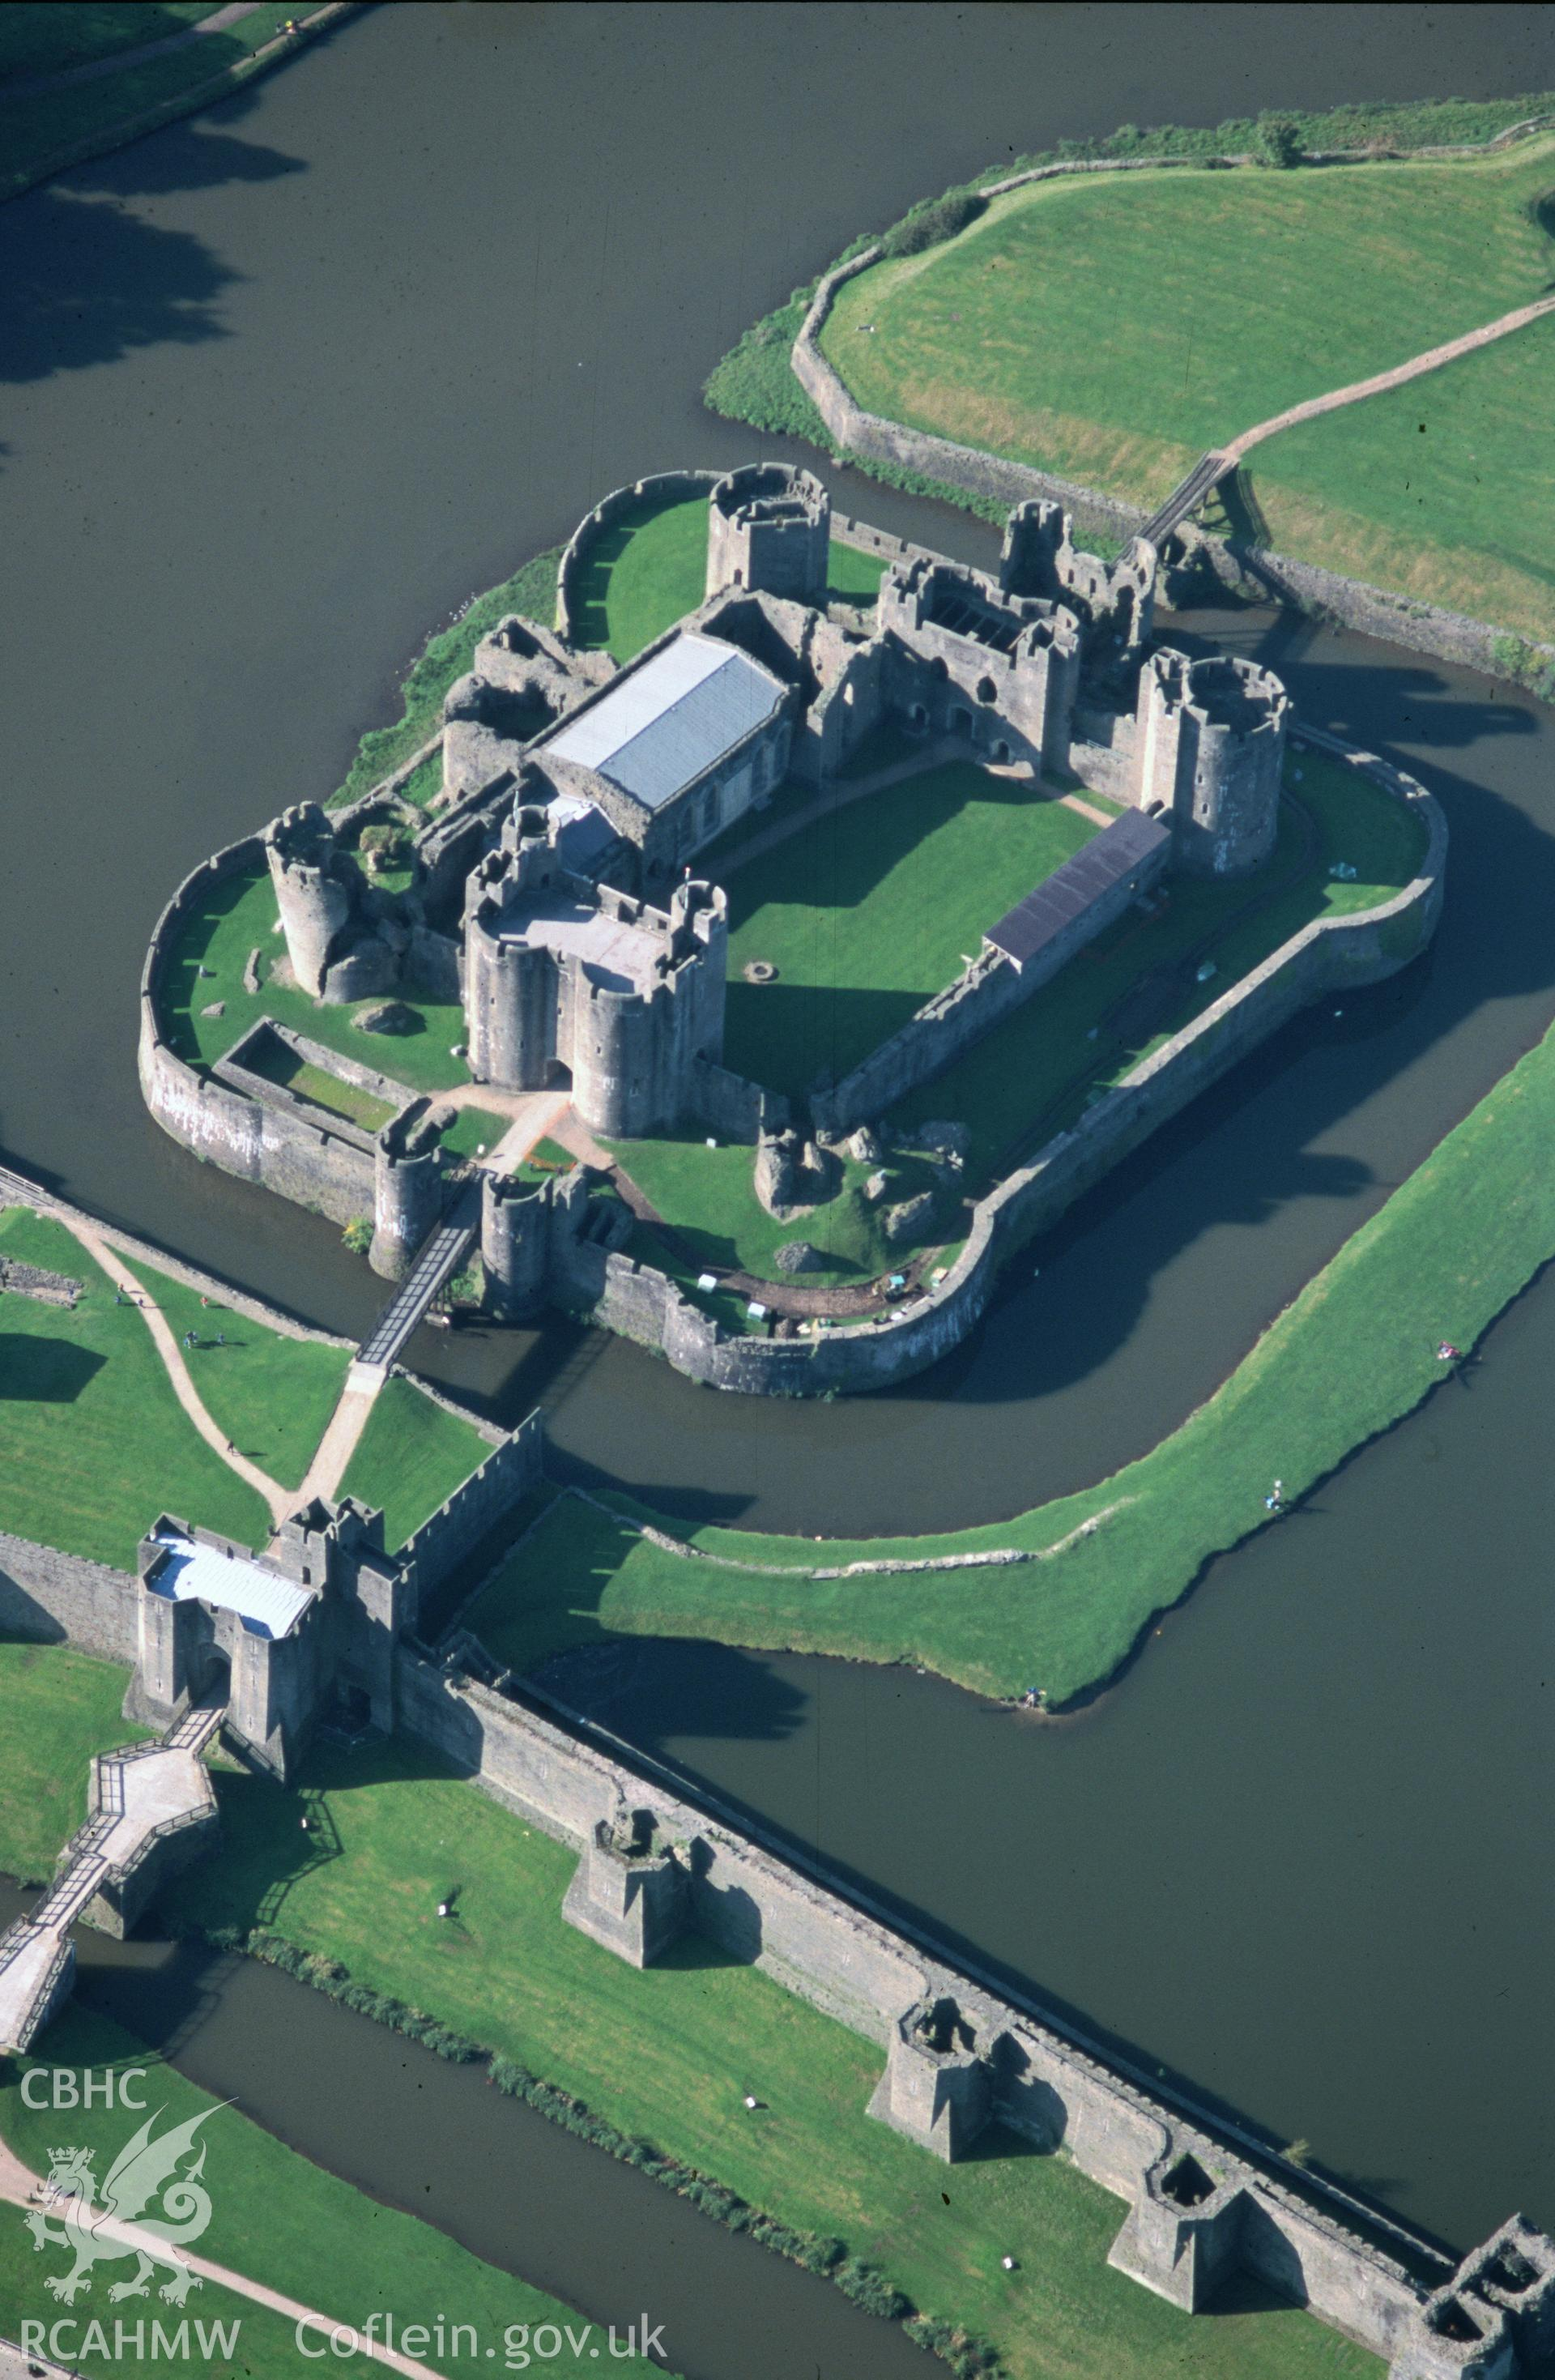 Slide of RCAHMW colour oblique aerial photograph of Caerphilly Castle, taken by T.G. Driver, 13/10/1999.